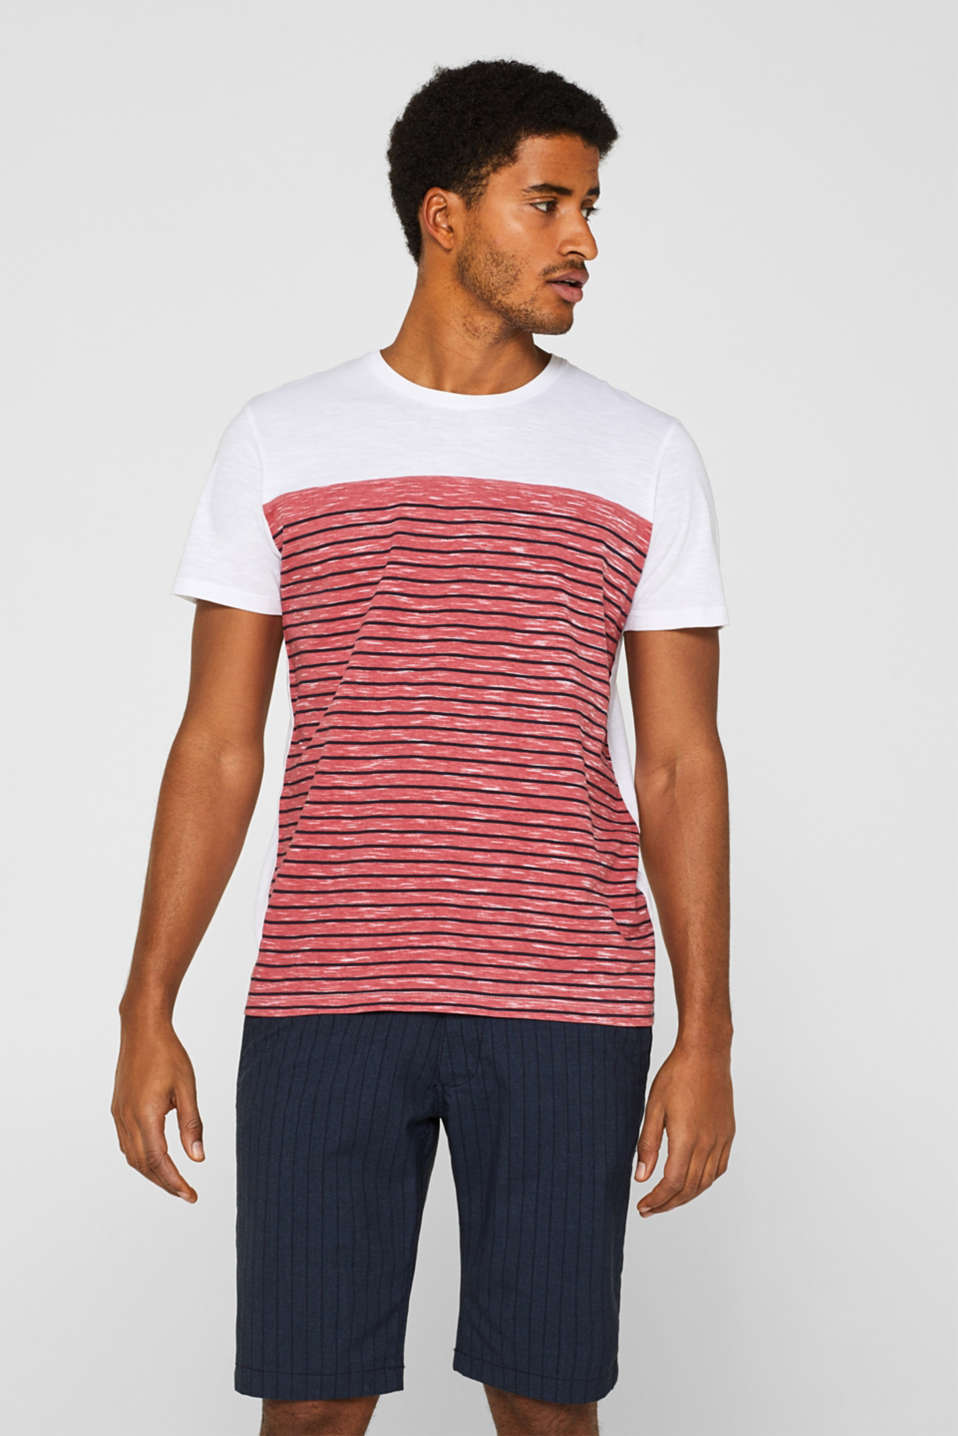 Jersey T-shirt with stripes, 100% cotton, BLUSH, detail image number 0